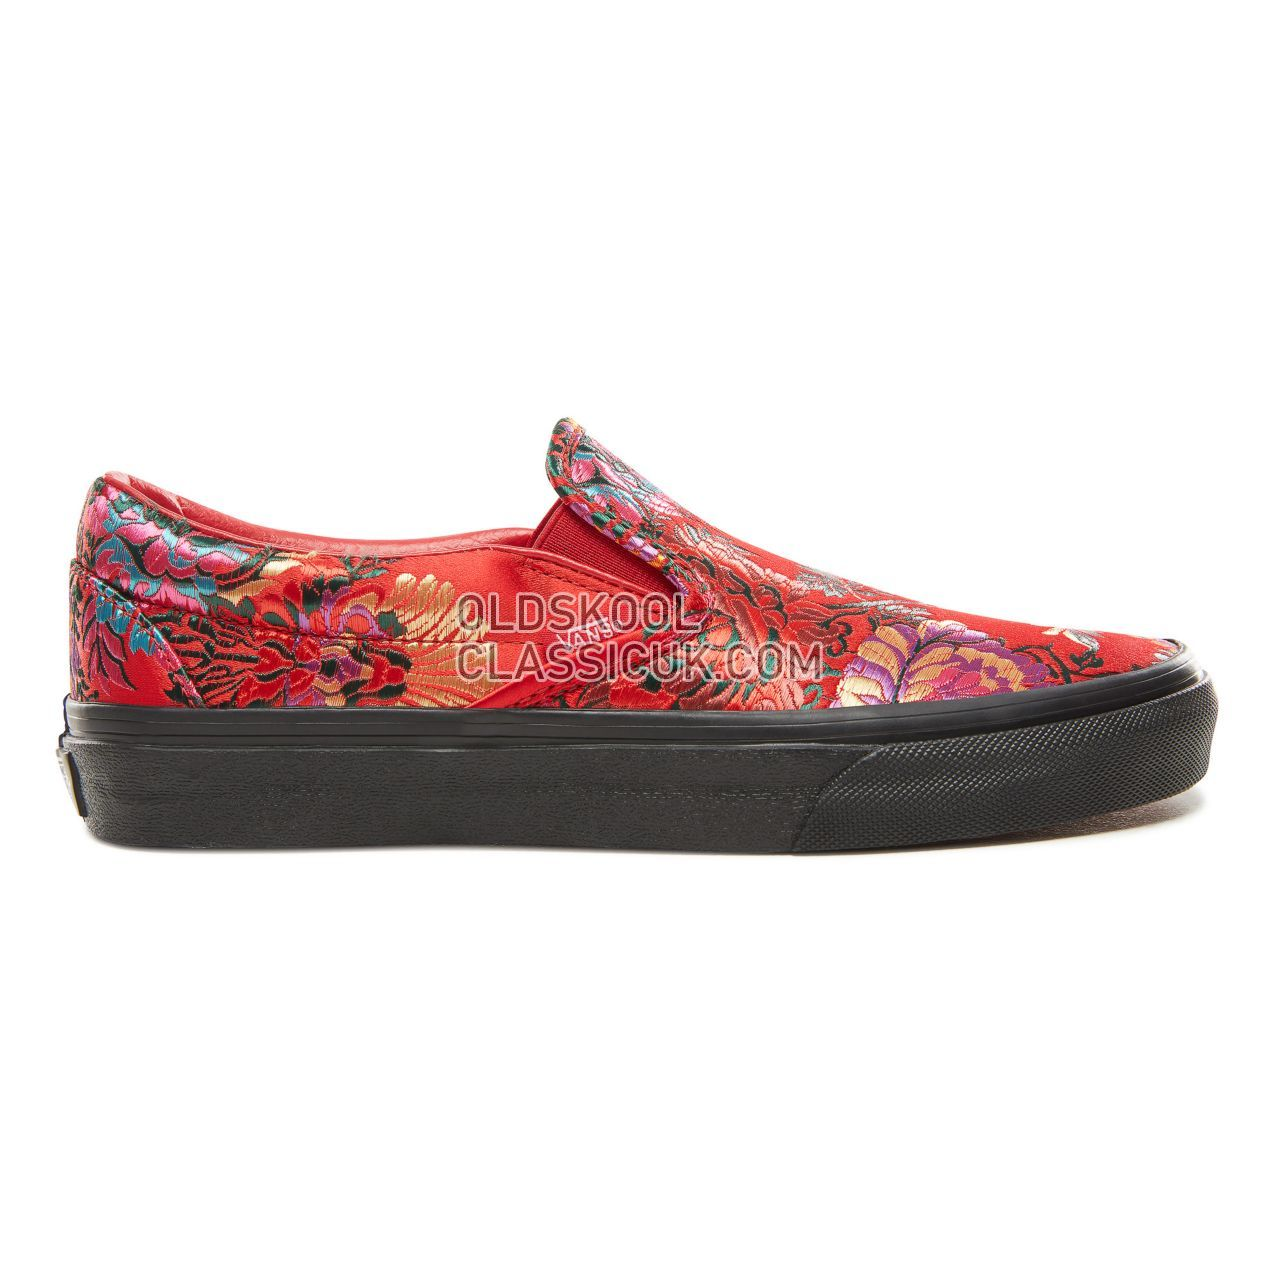 Vans Festival Satin Classic Slip-On Sneakers Womens (Festival Satin) Red/Black VN0A38F7ULP Shoes